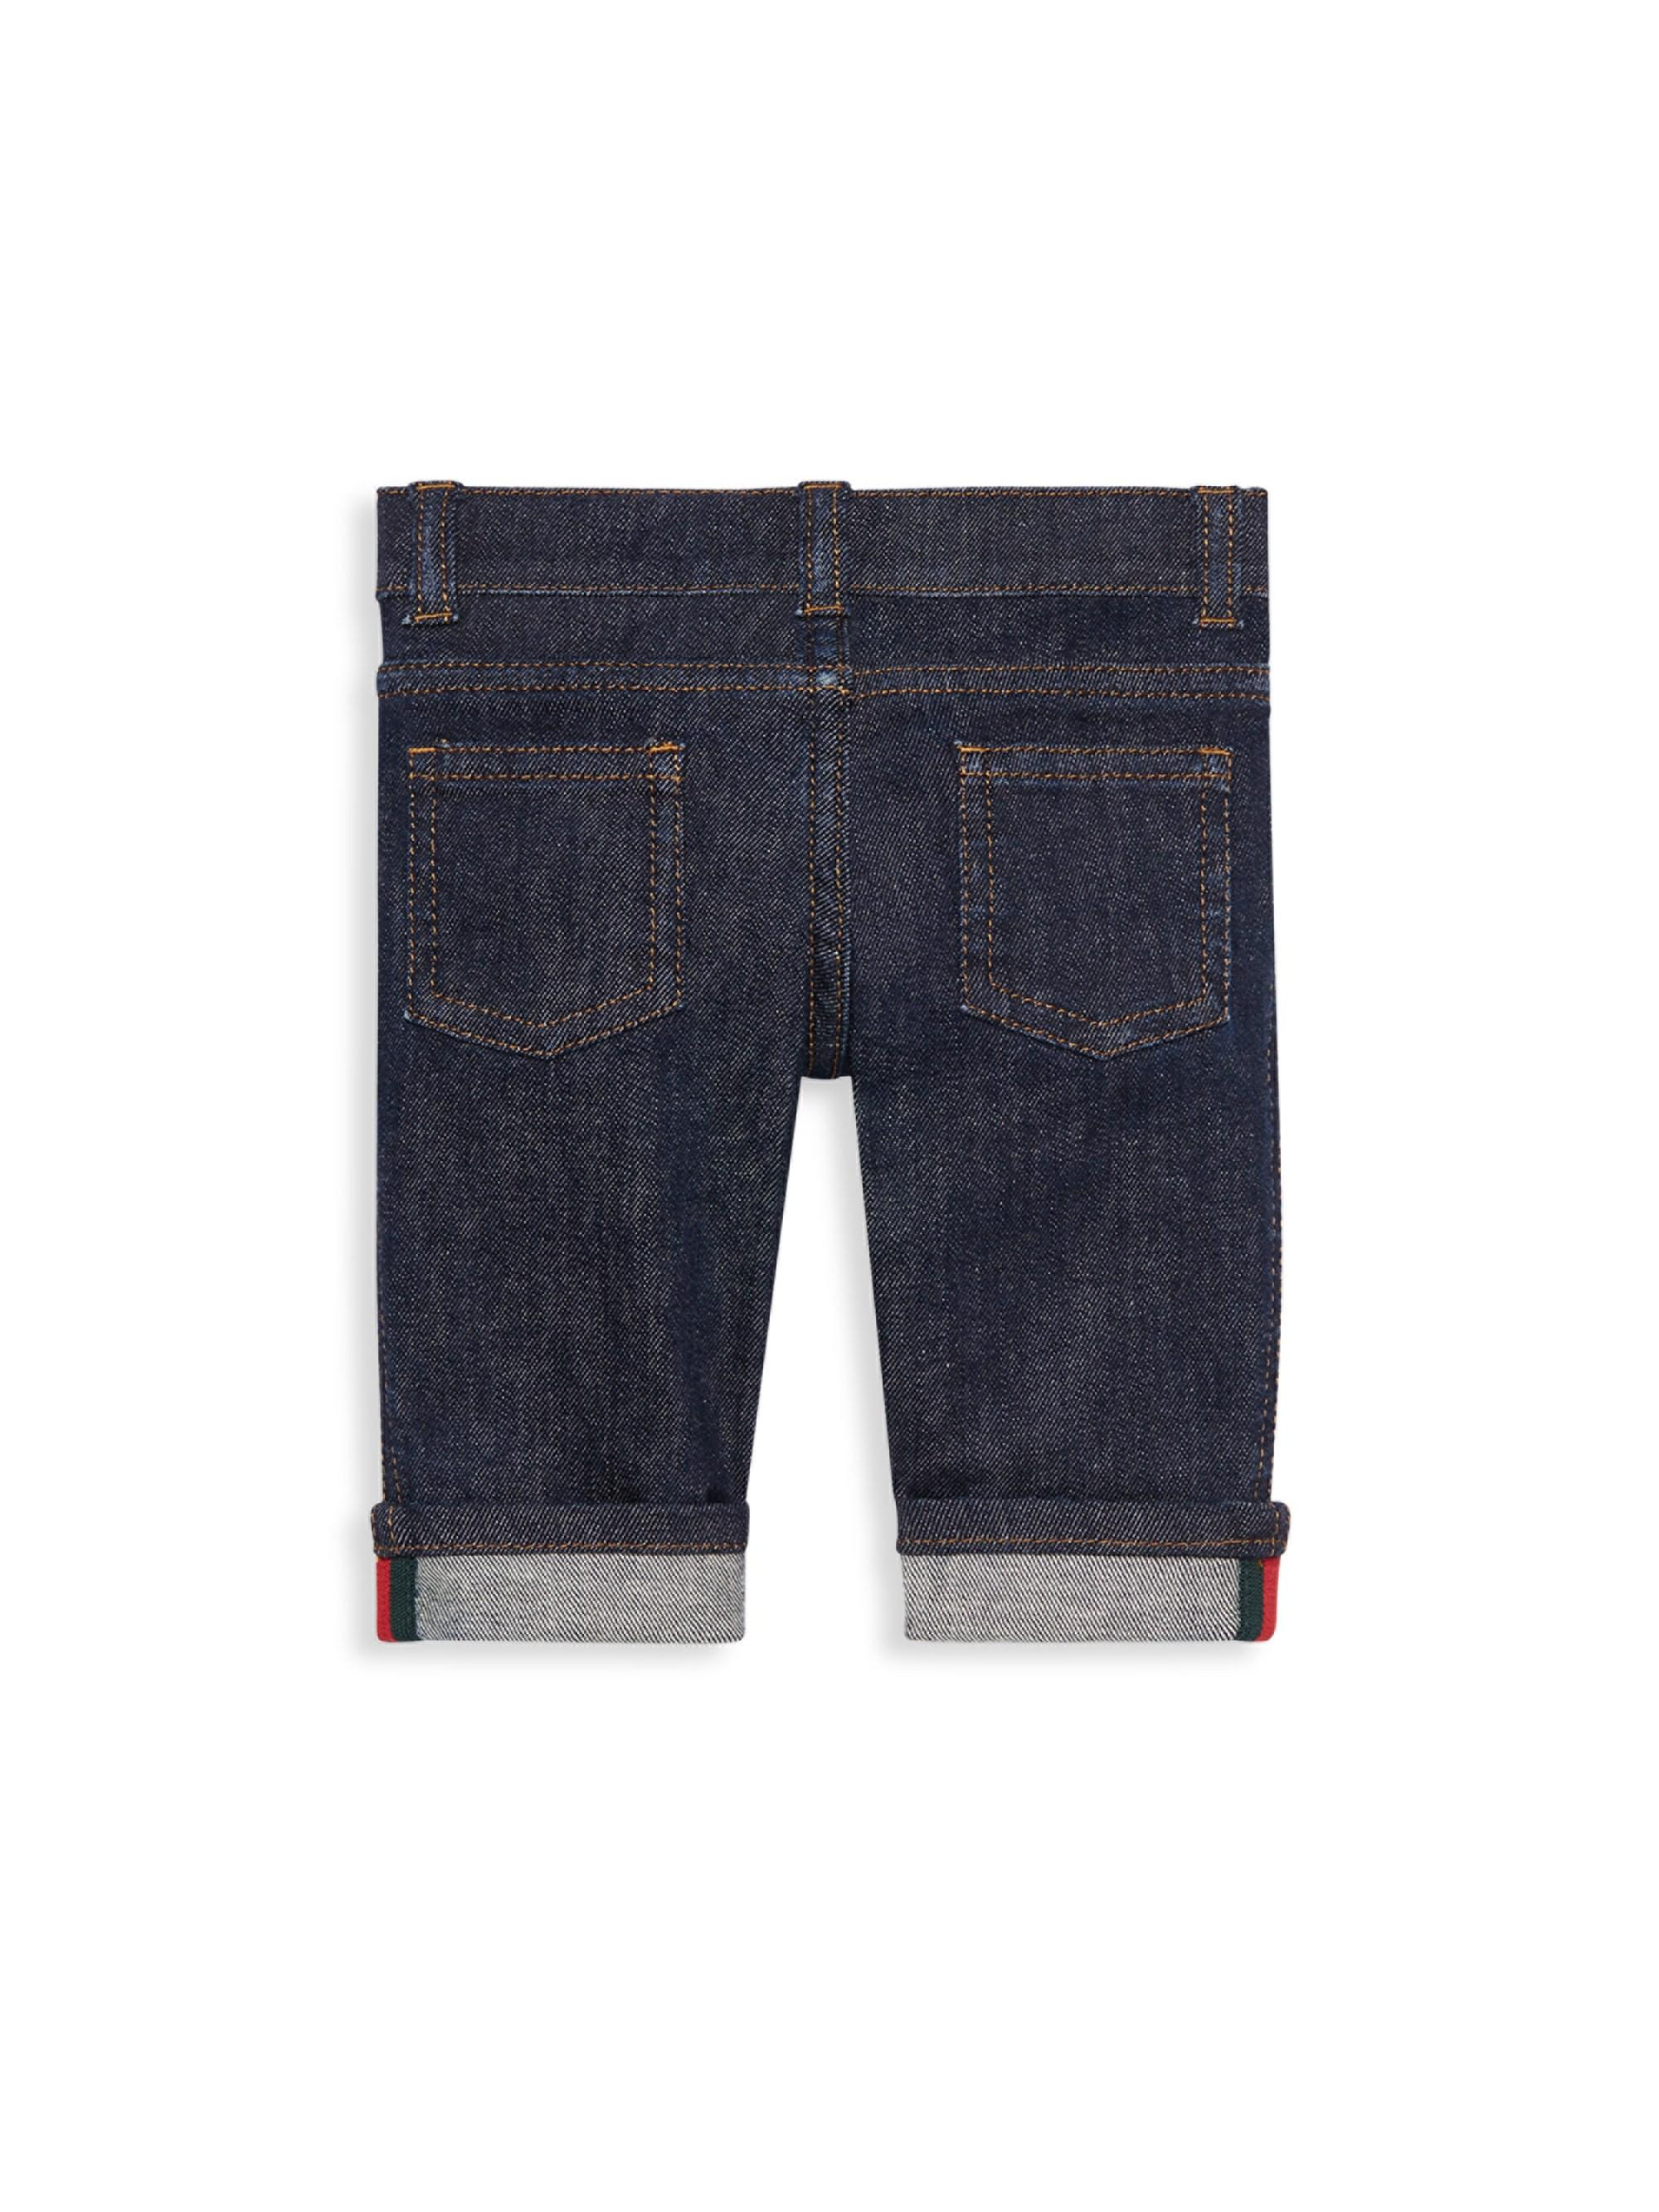 d2452cd57fb6 Lyst - Gucci Baby s Jeans - Indigo - Size 6-9 Months in Blue for Men